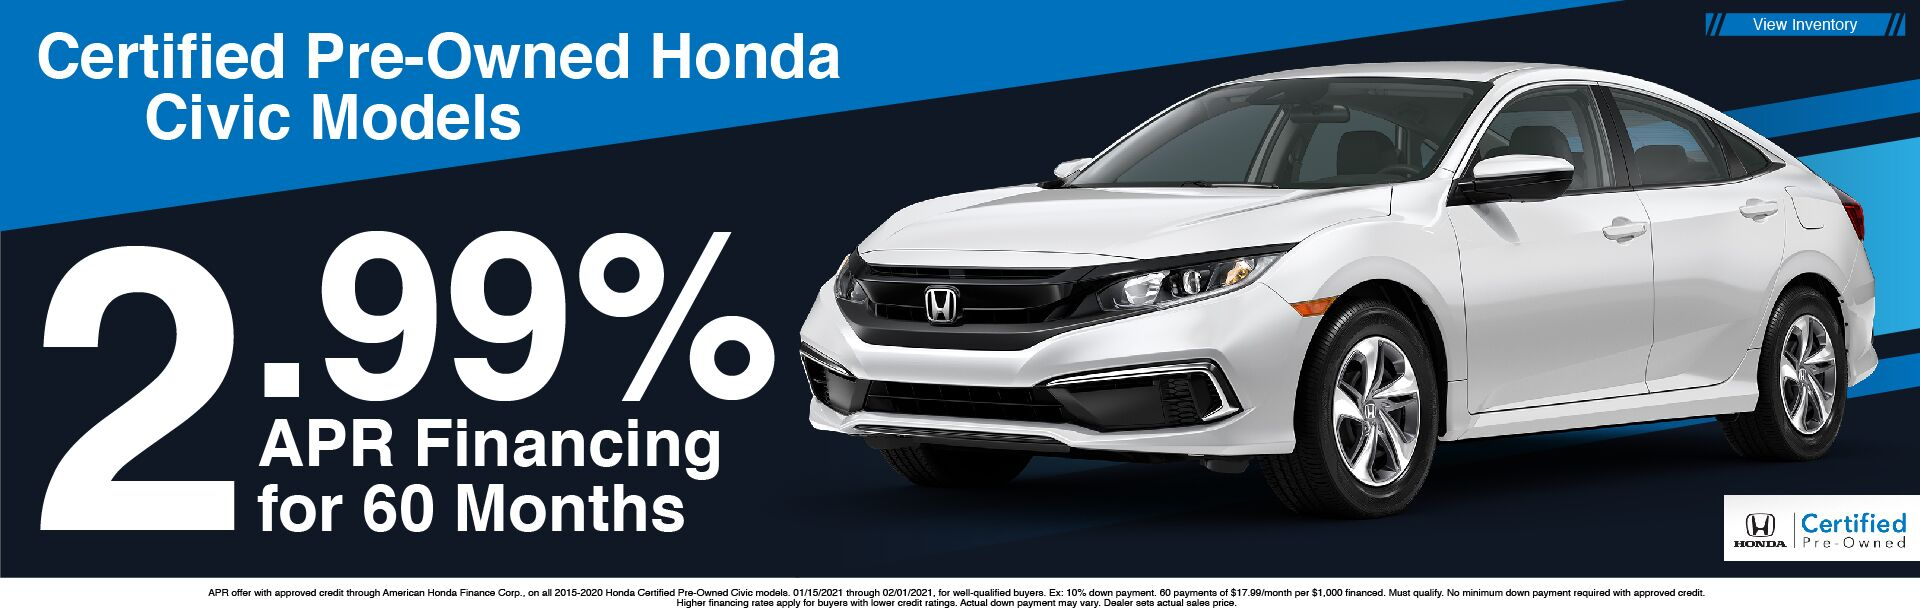 Certified Pre-Owned Civic 2.99% APR x60